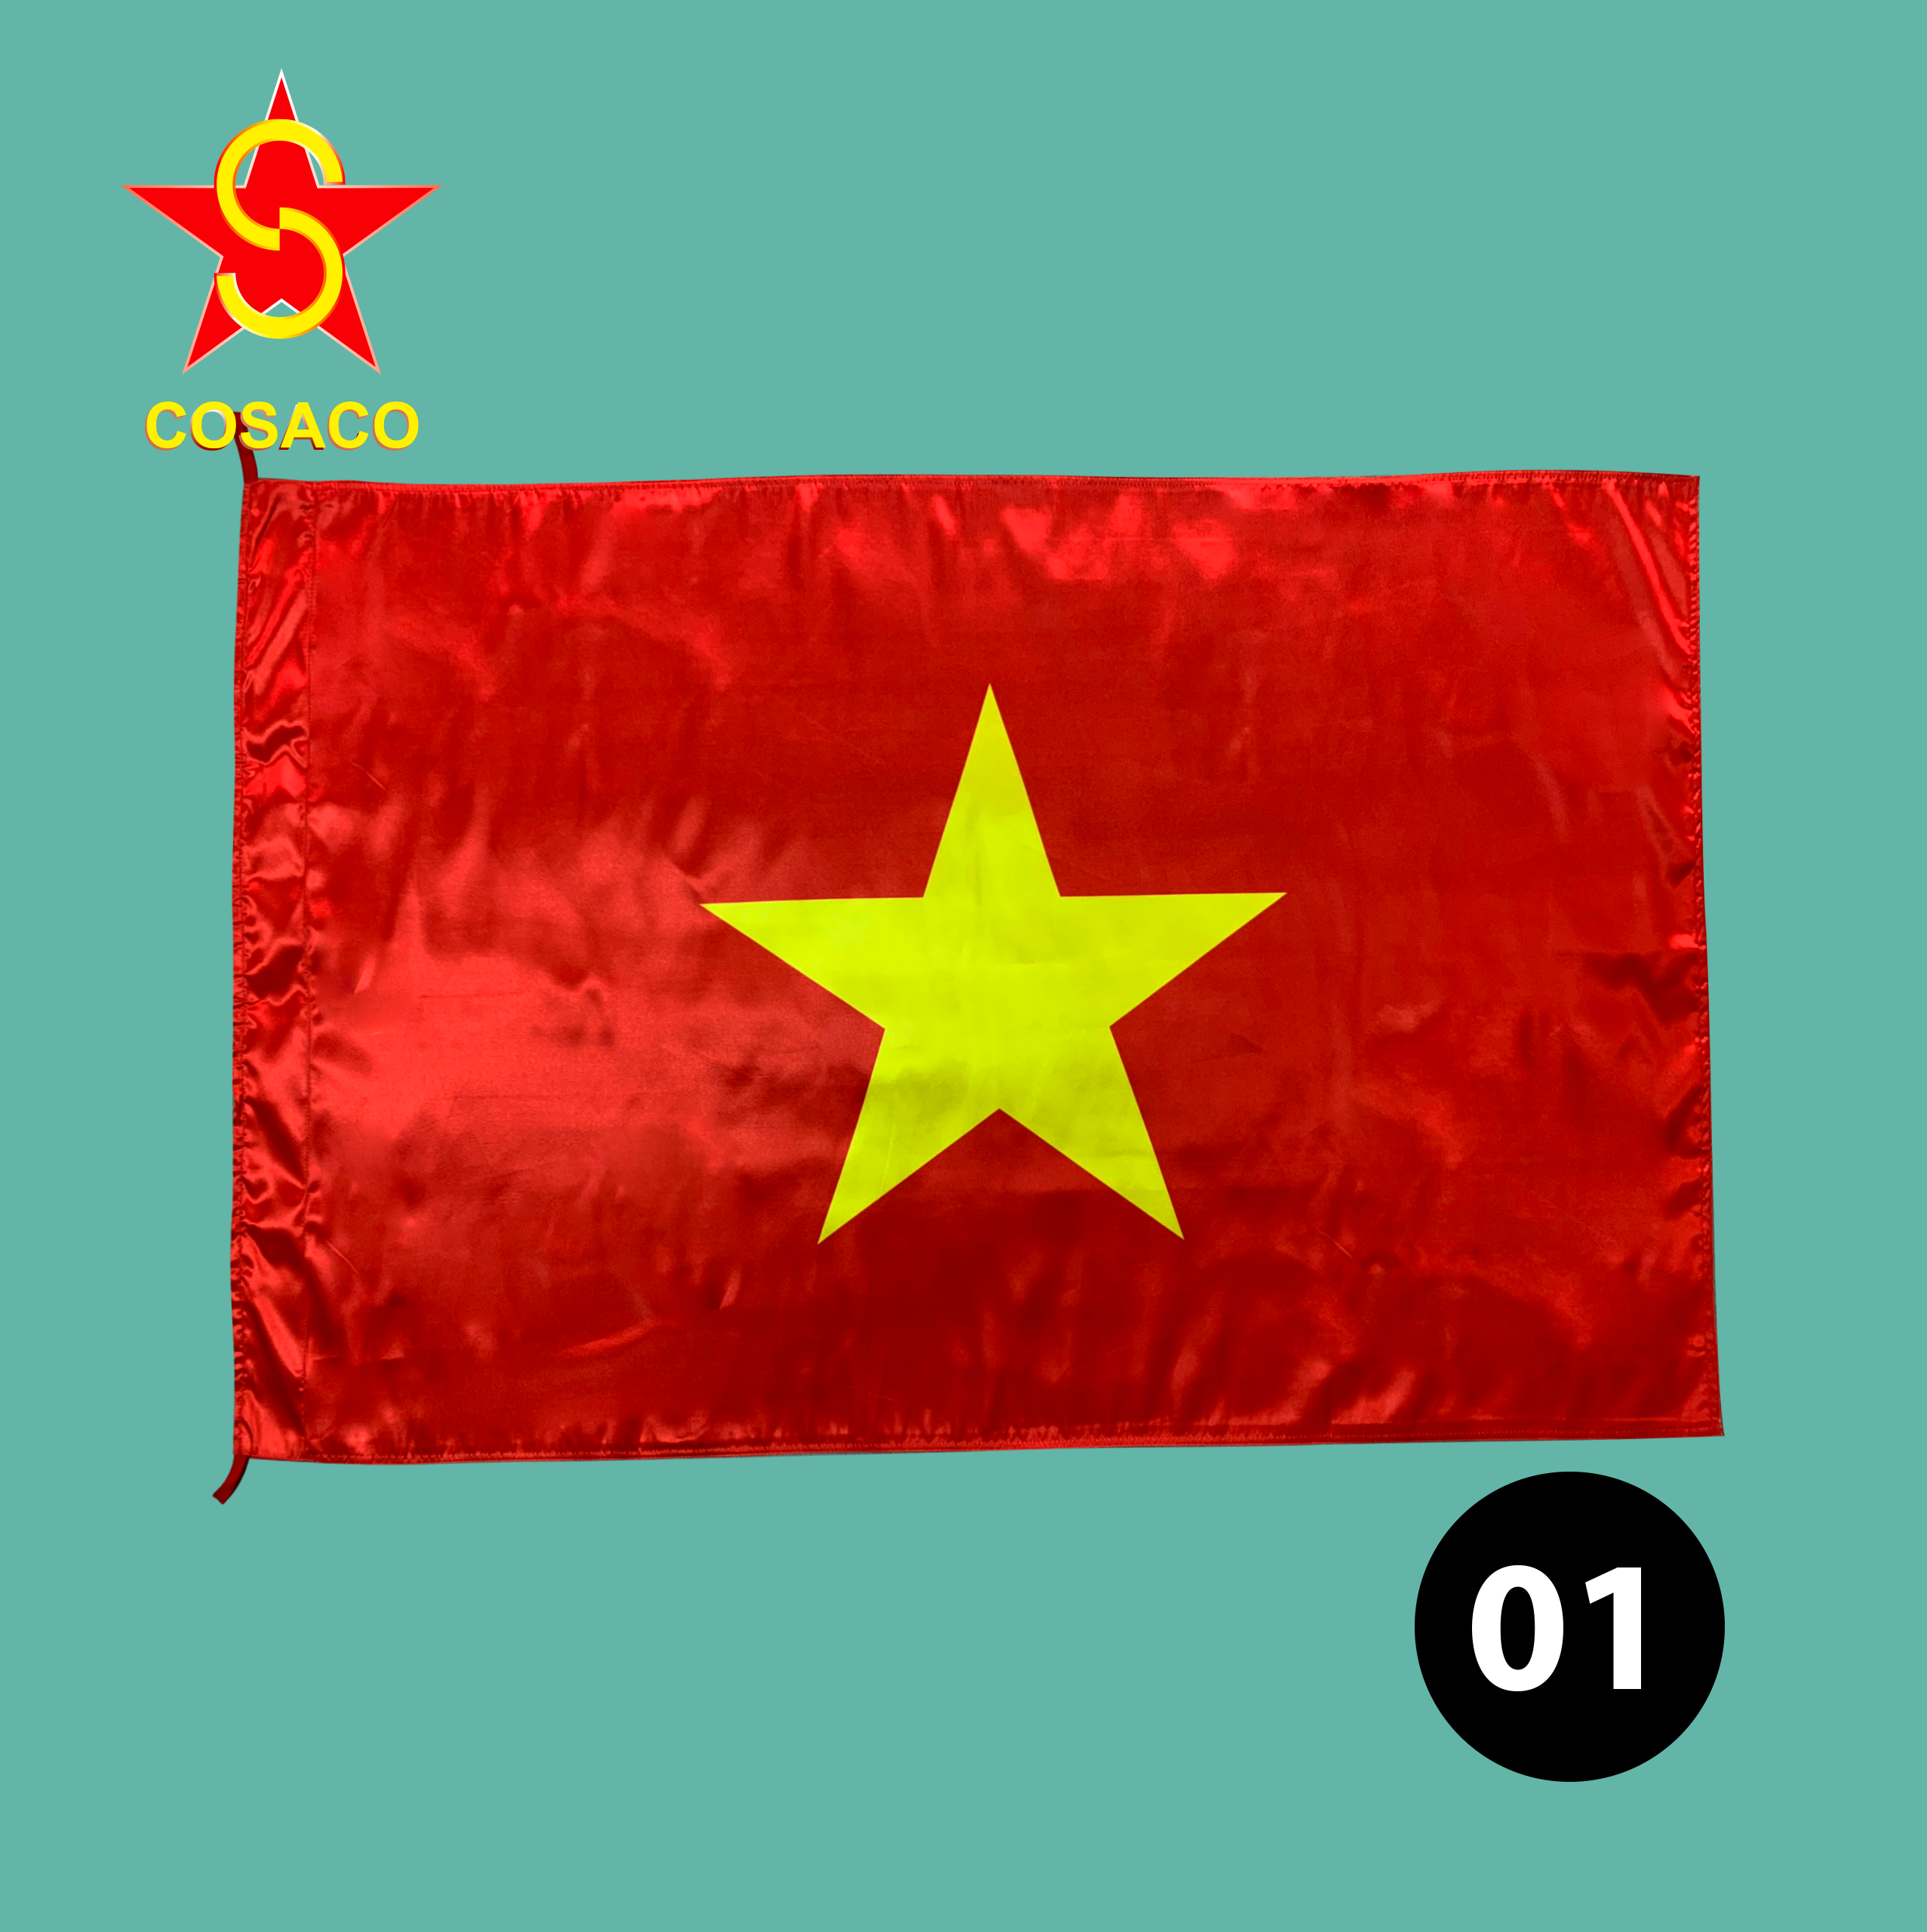 Cờ Tổ Quốc in cao cấp